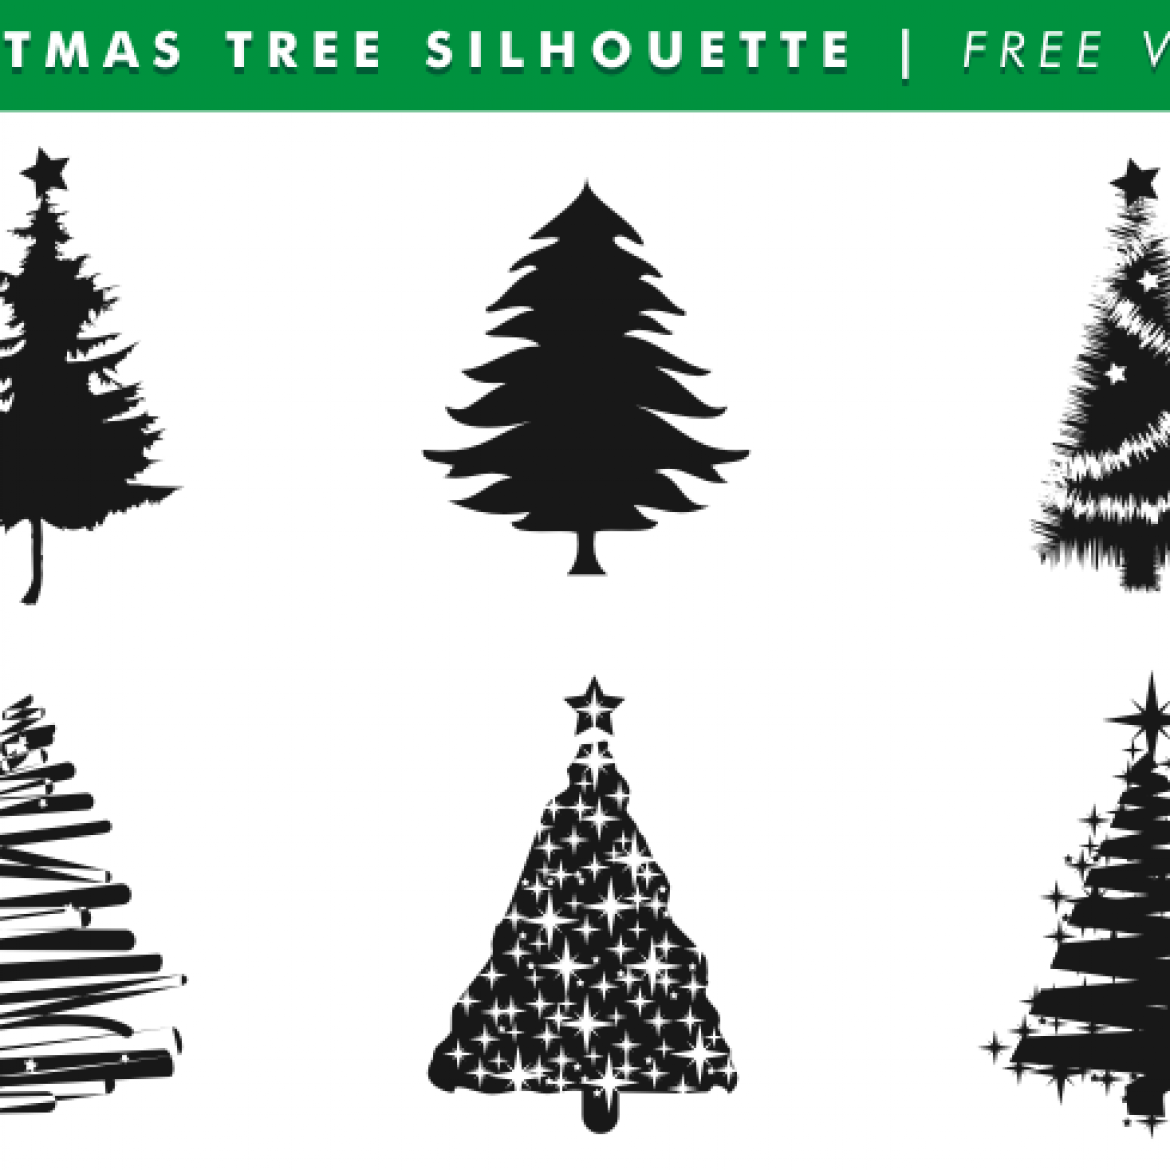 Free vector Christmas Tree Silhouettes Free Vector 11469